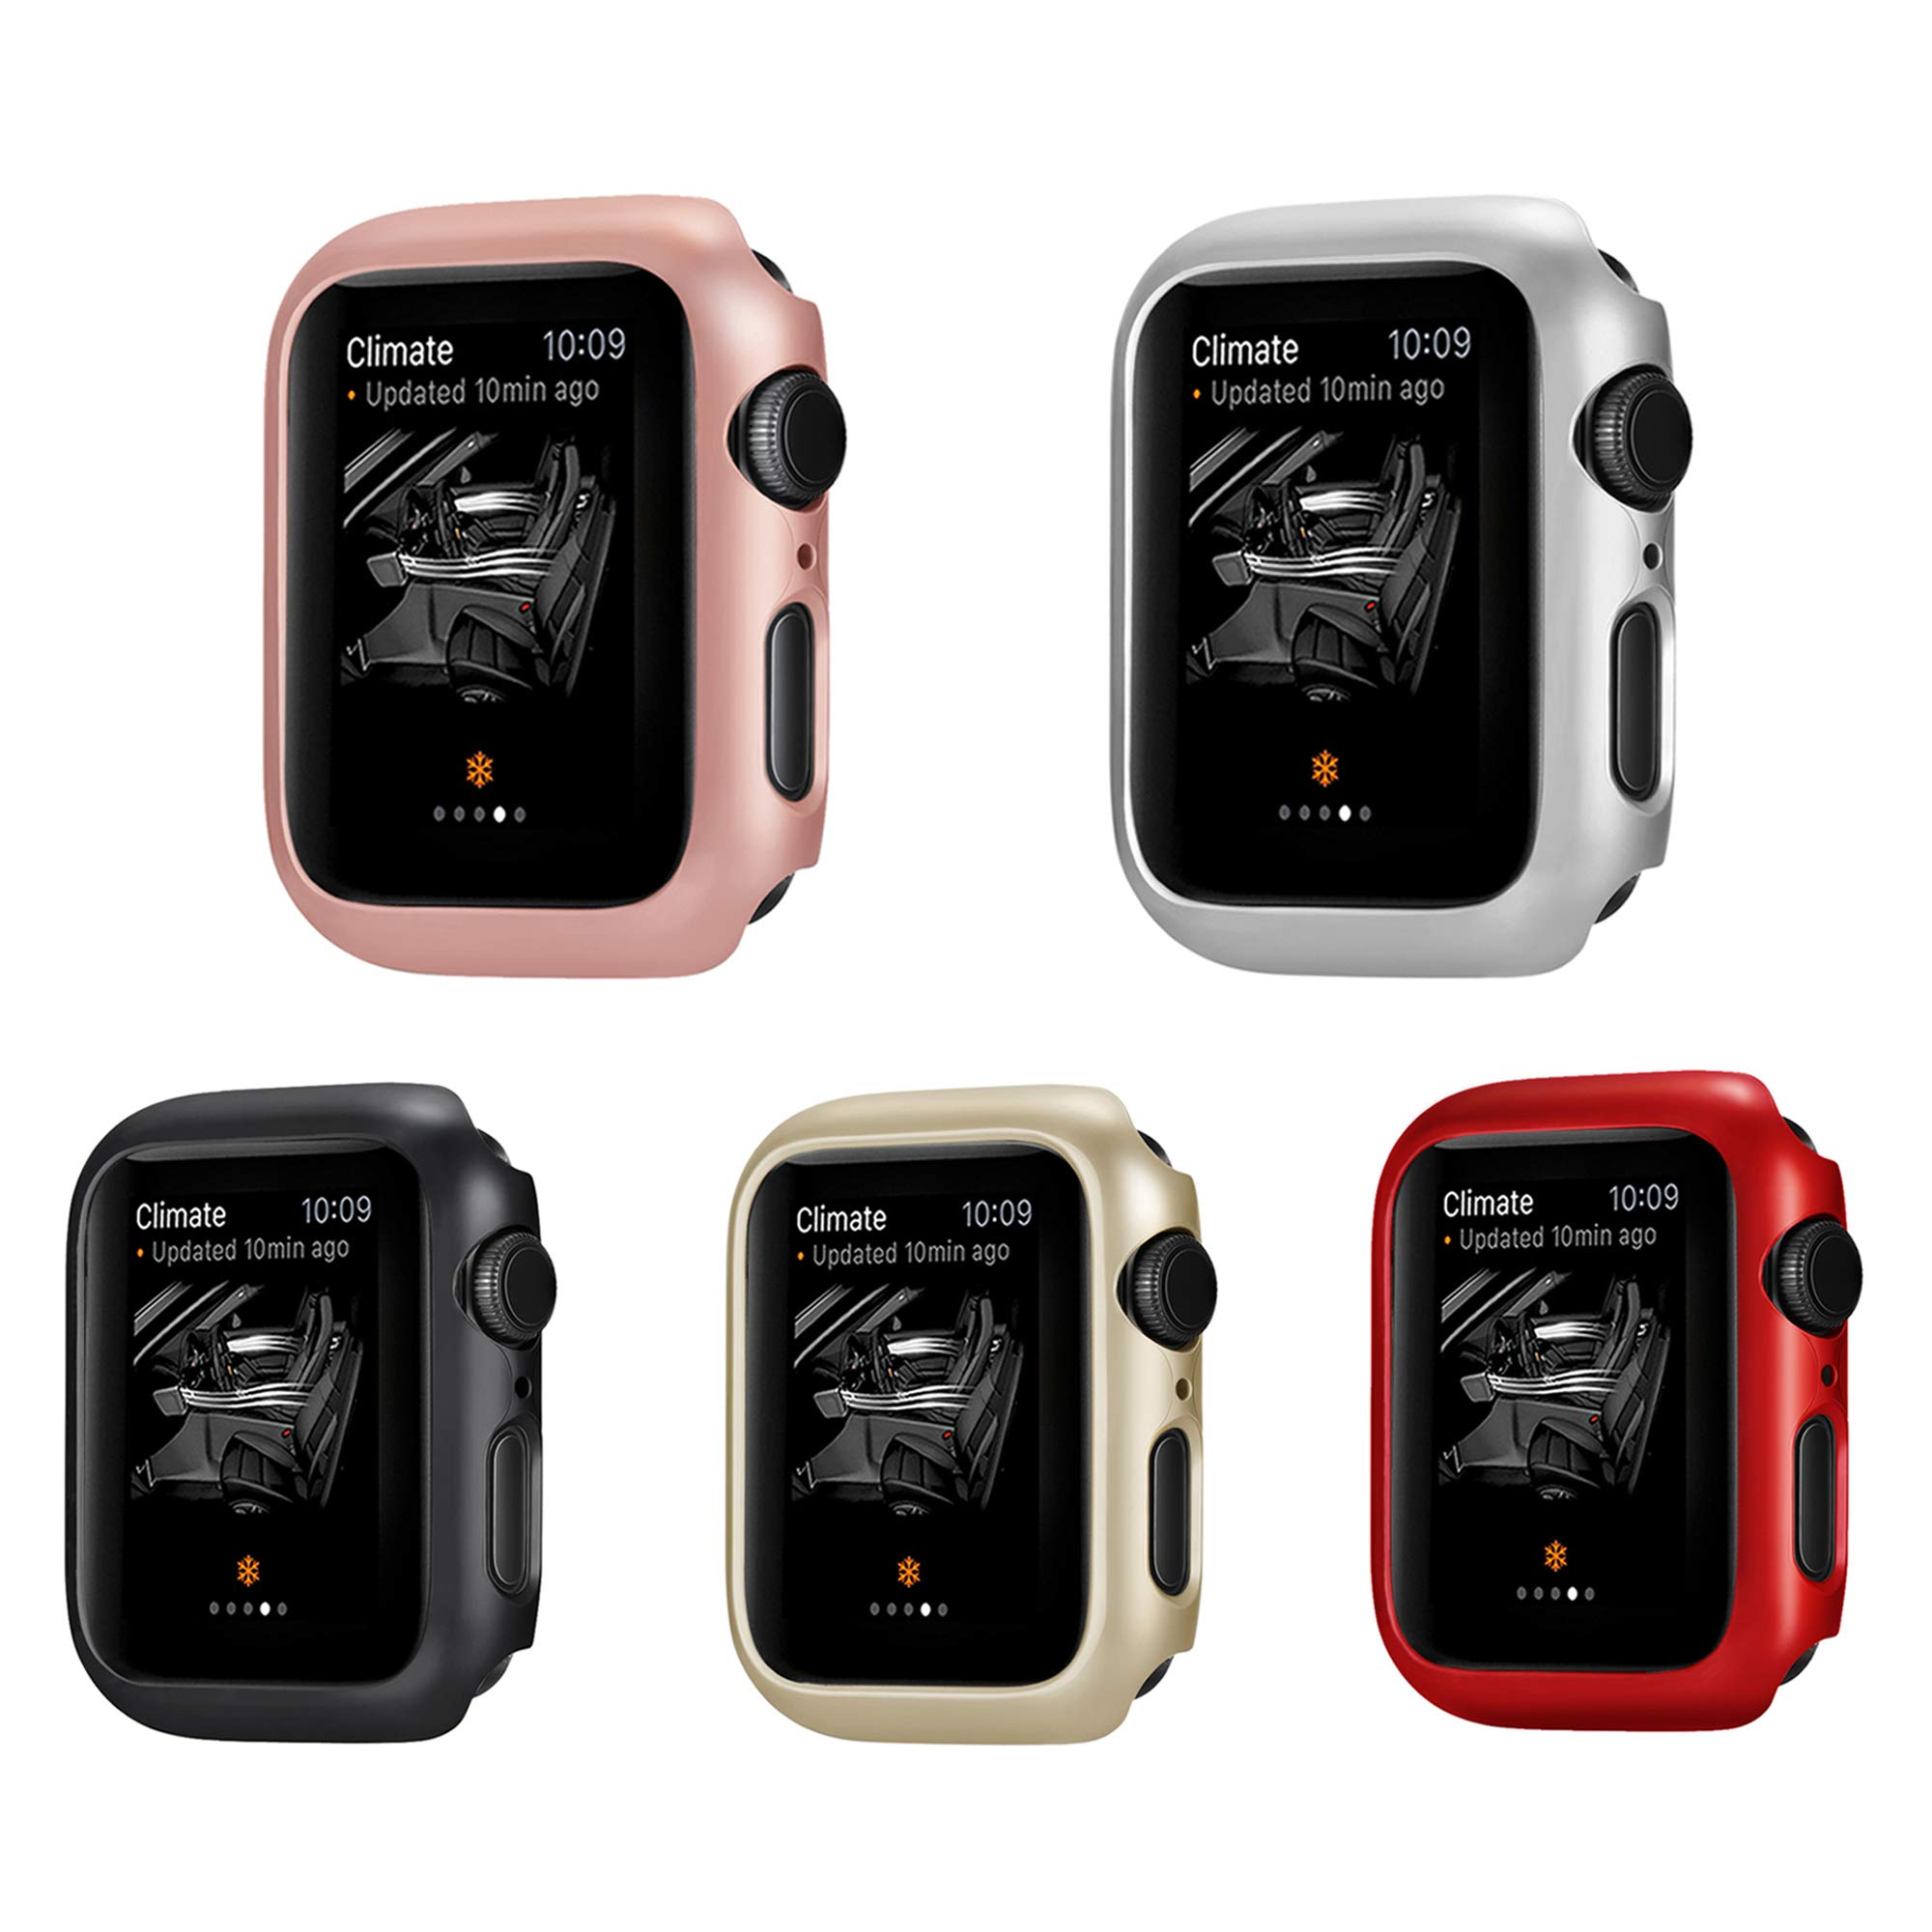 Leotop Compatible with Apple Watch Series 4 Case 44mm 40mm, Super Thin Bumper Protector PC Hard Cover Lightweight Slim Shockproof Accessories Matte Frame Compatible iWatch (5 Color Pack, 40mm)